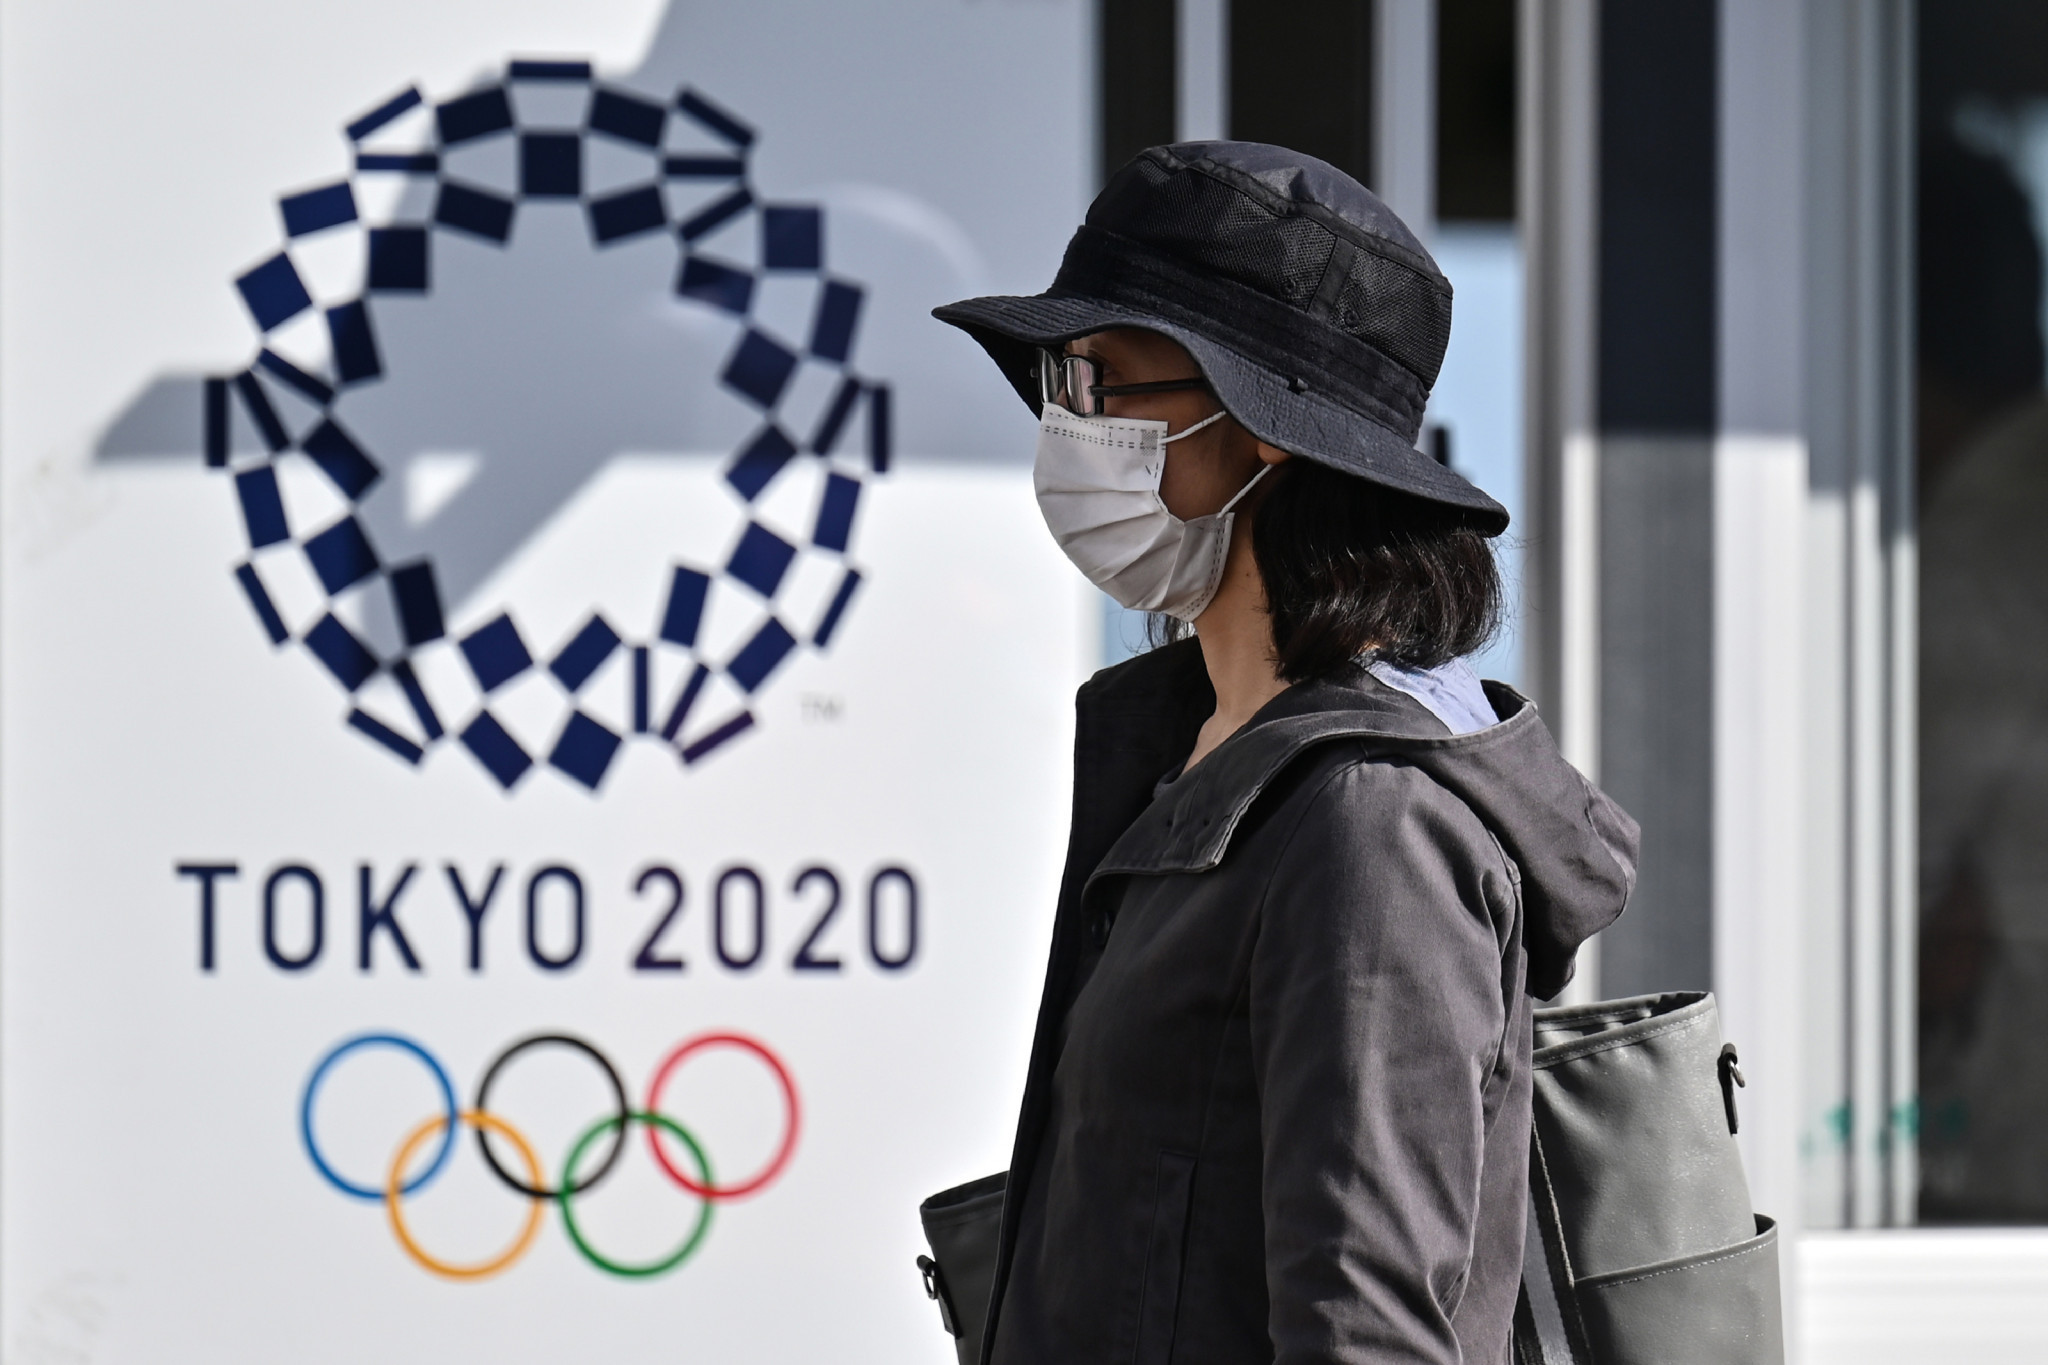 Tokyo 2020 unlikely to look previous Olympics due to anti-COVID-19 regulations  ©Getty Images